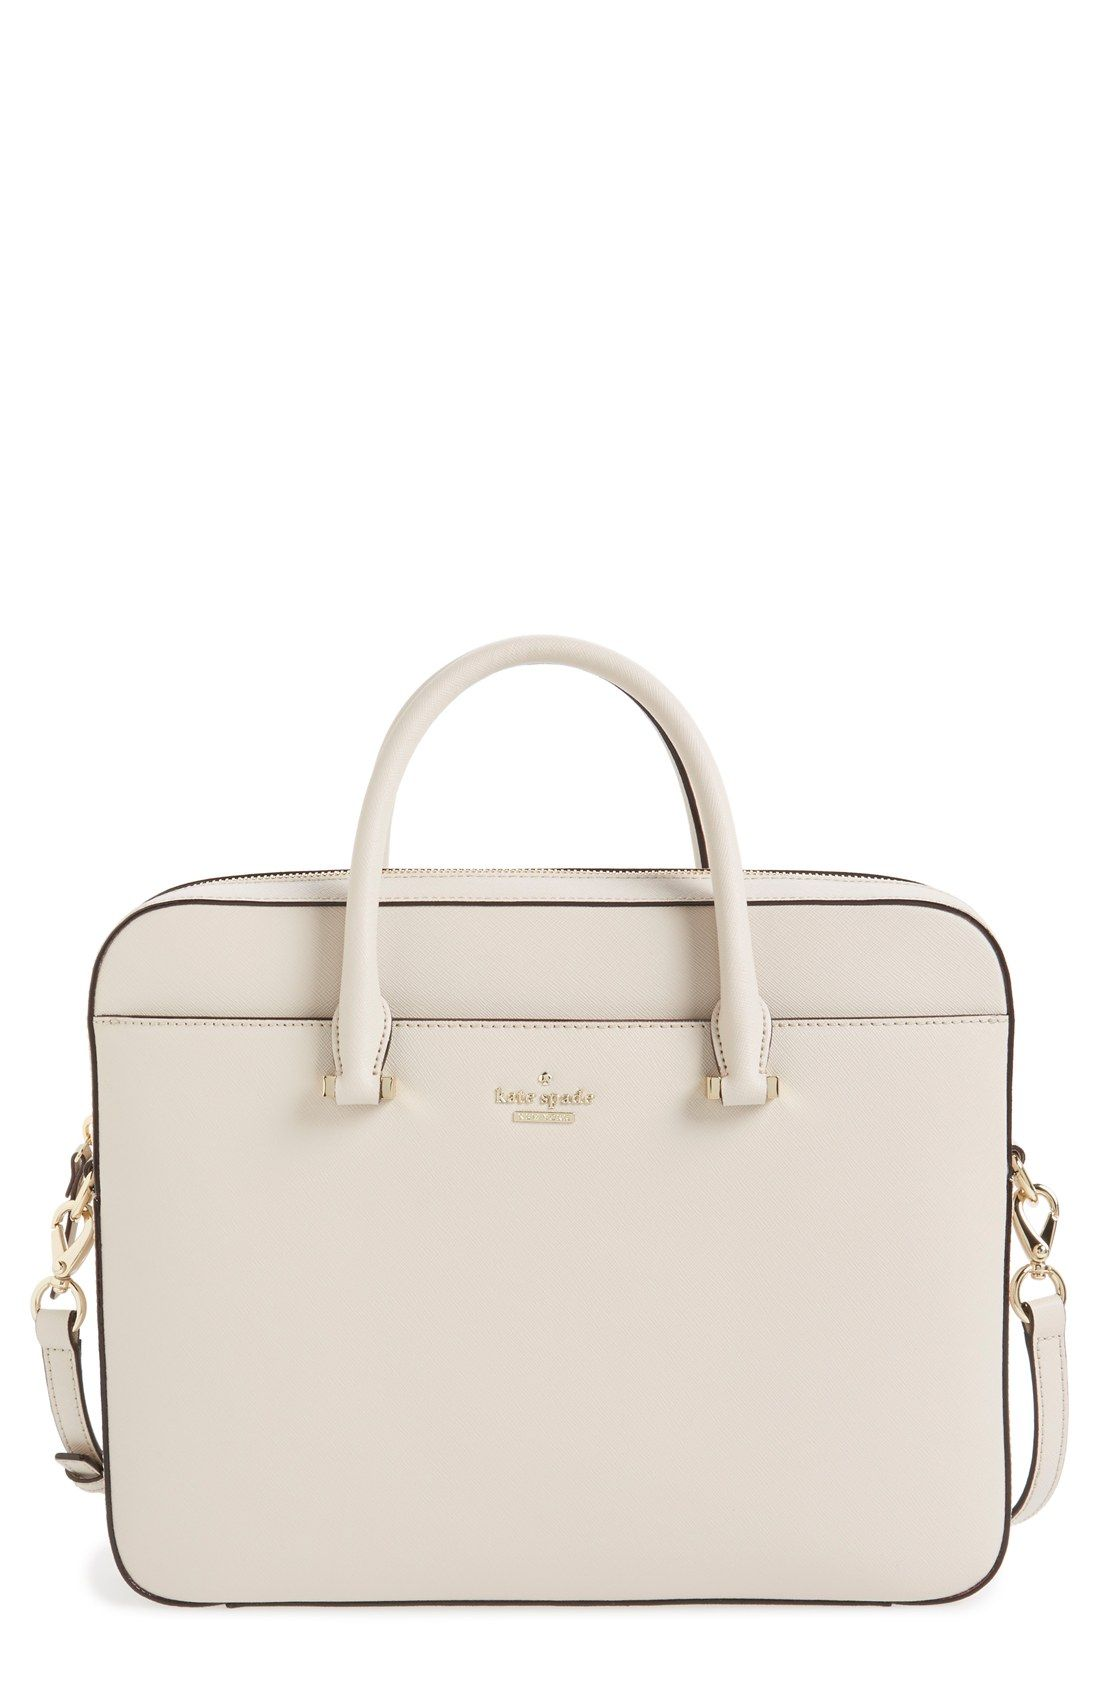 7663495390c8 kate spade new york saffiano leather laptop bag (13 Inch)